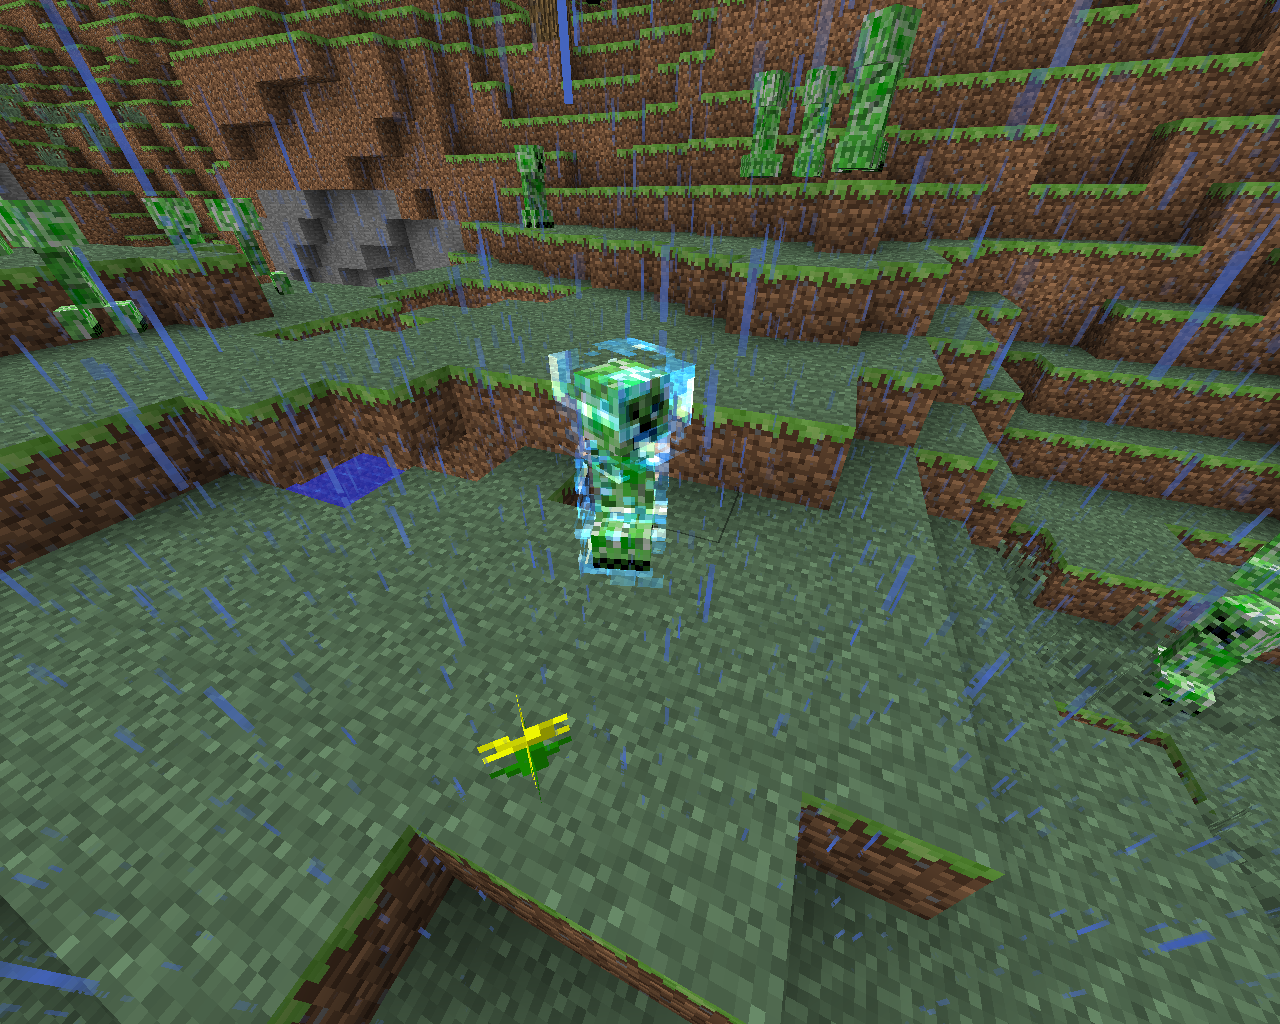 Image Charged Creeper Png Minecraft Wiki